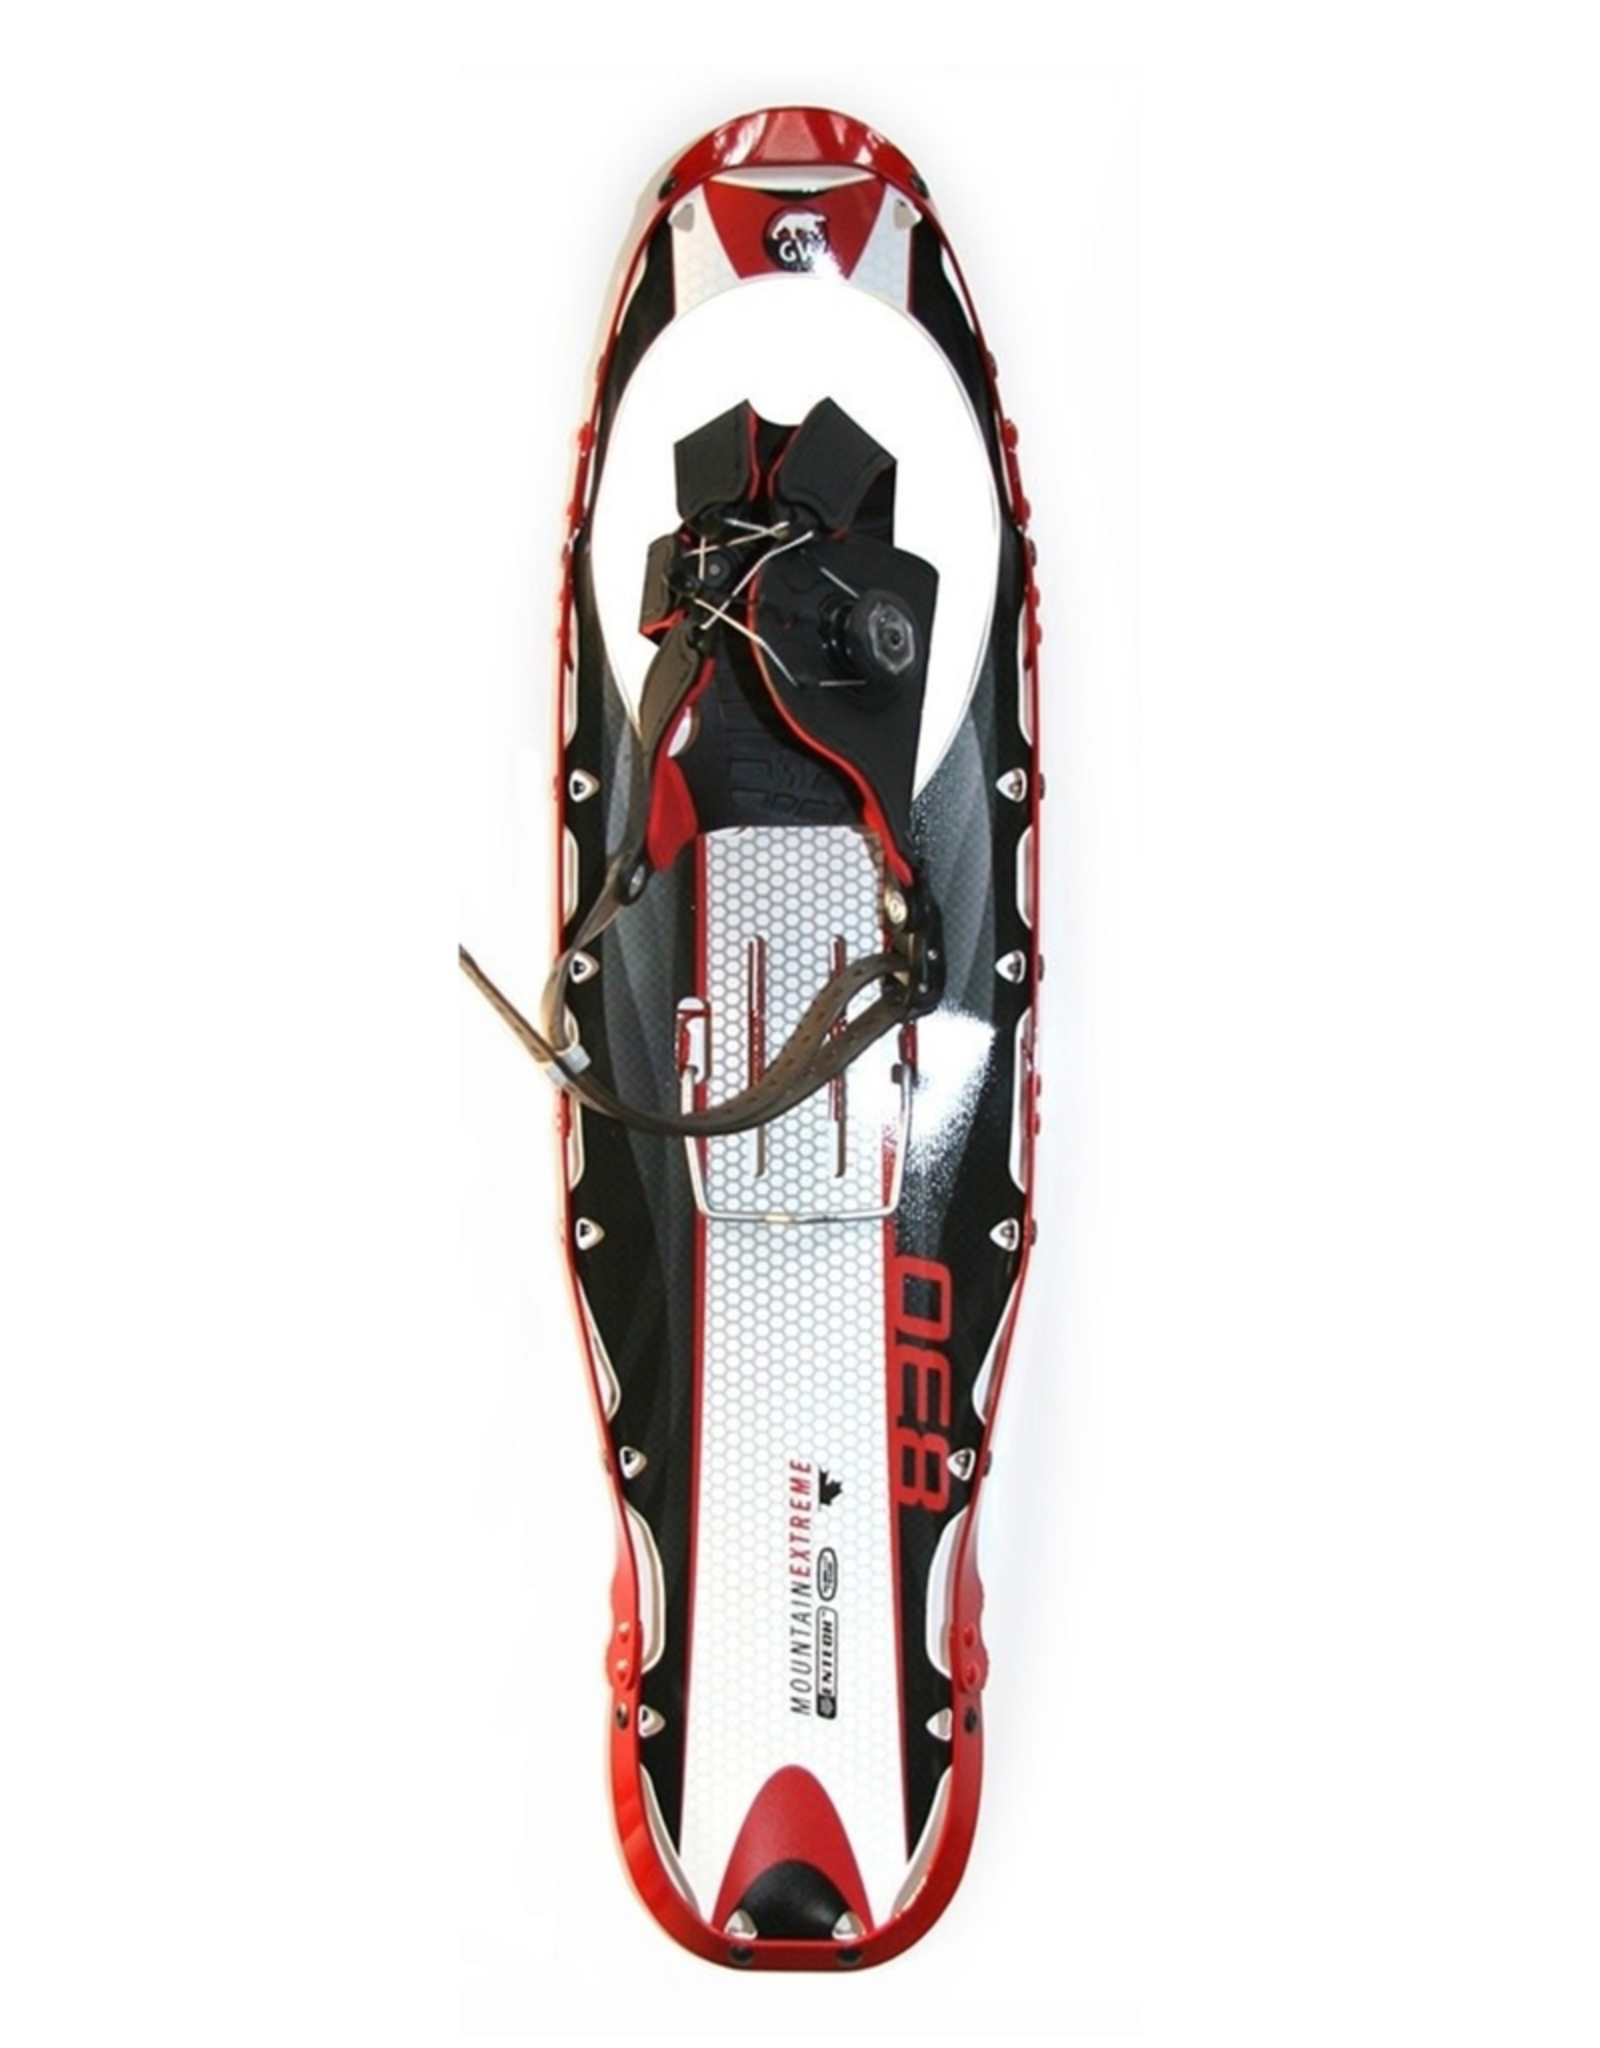 GV Snowshoes GV Mountain Extreme Spin Snowshoe Red 8x25